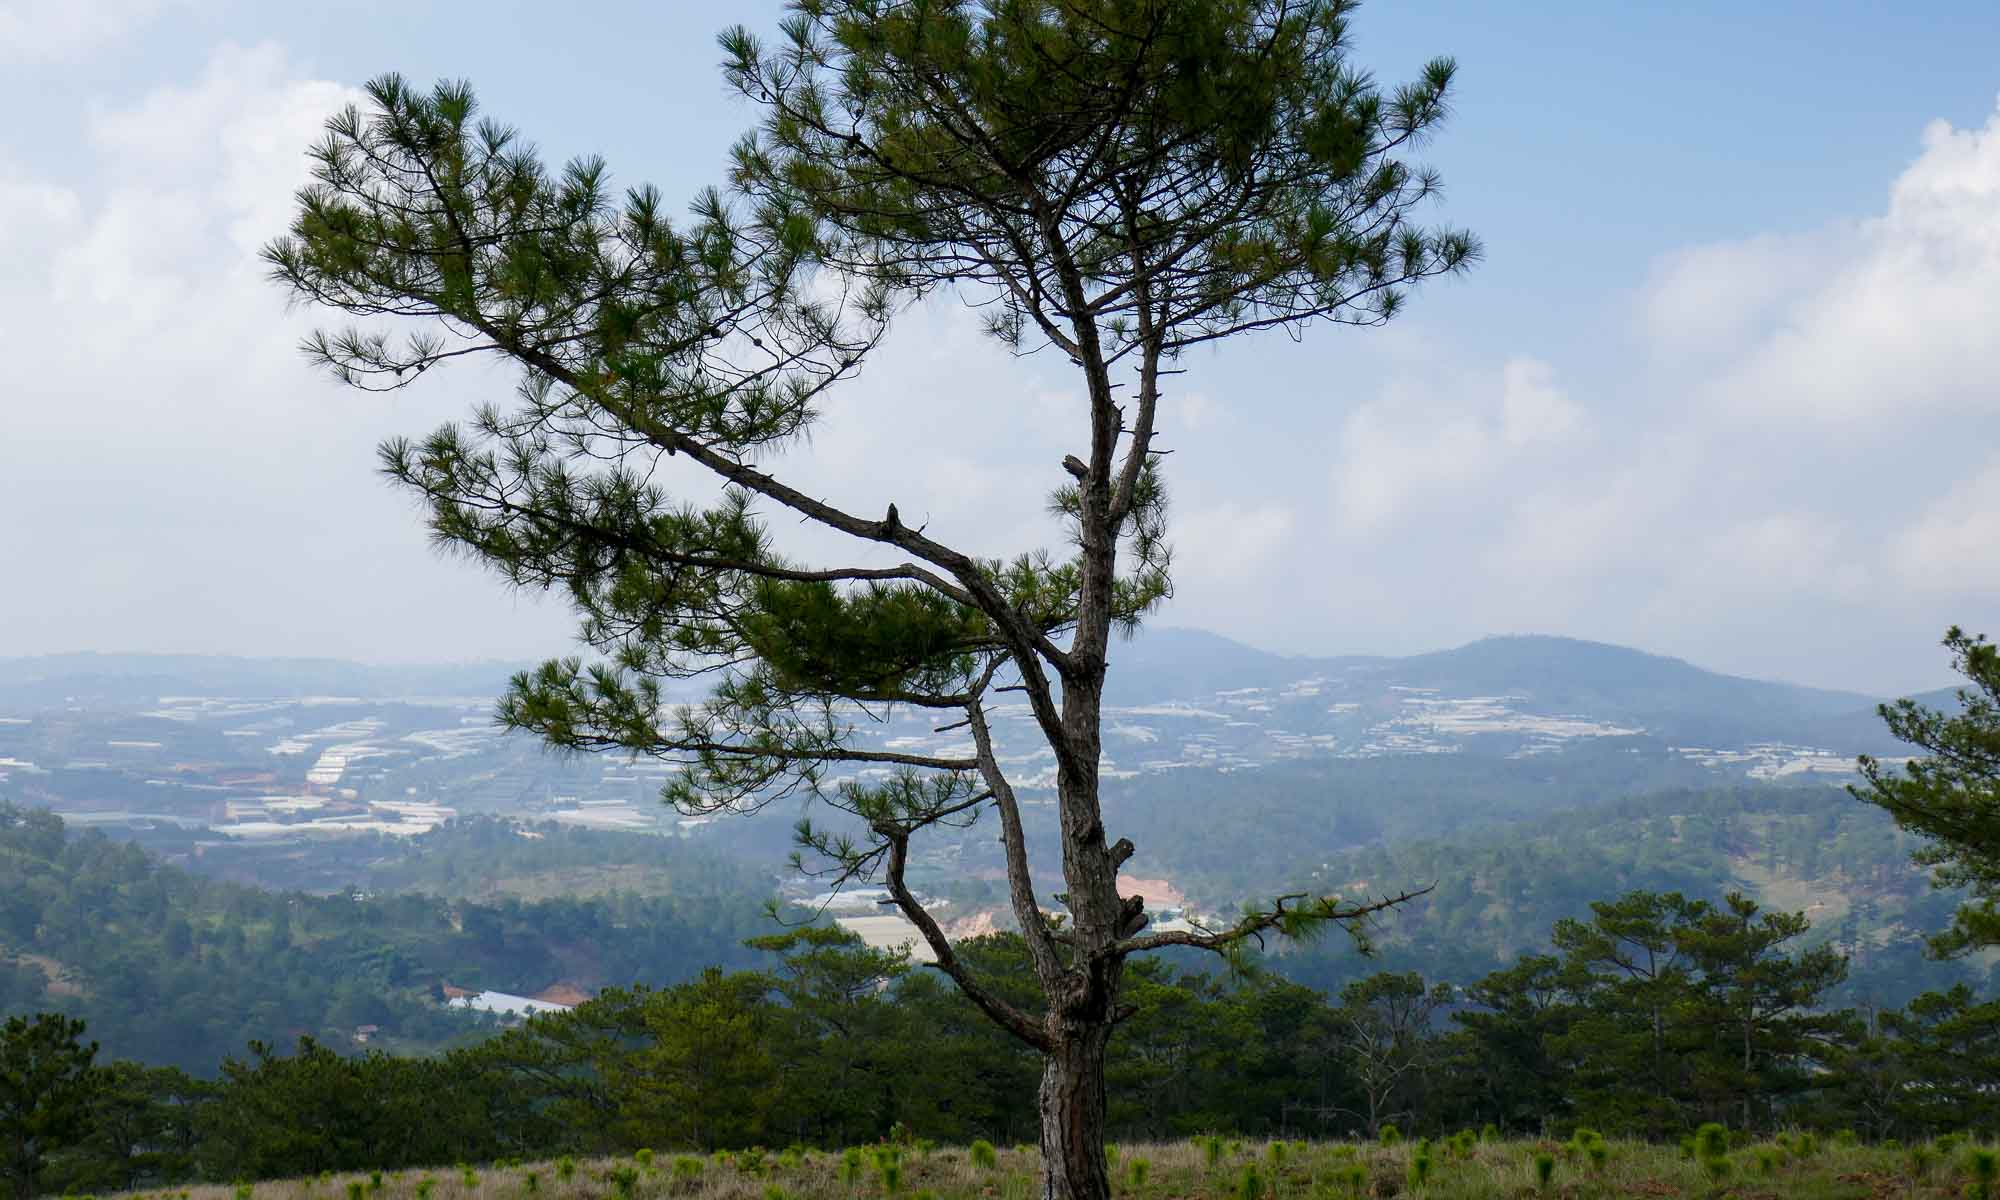 View from a hill close to Da Lat